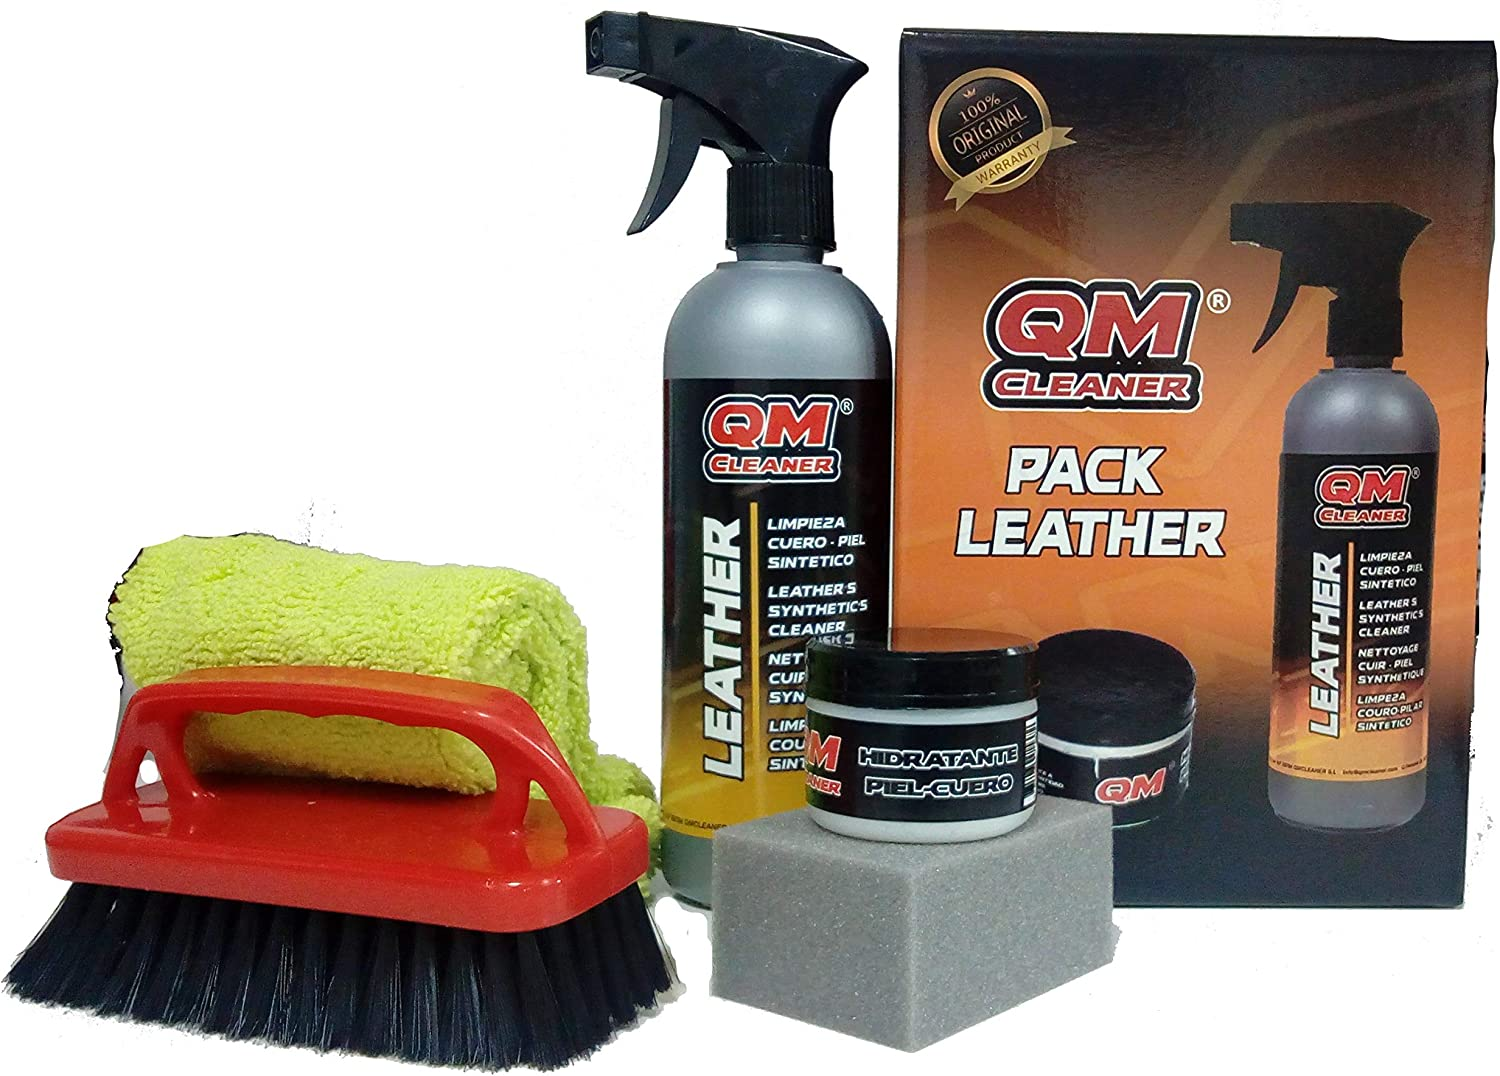 QM CLEANER PACK LEATHER, PACK DE LIMPIEZA E HIDRATACIÓN PARA MATERIALES DE PIEL